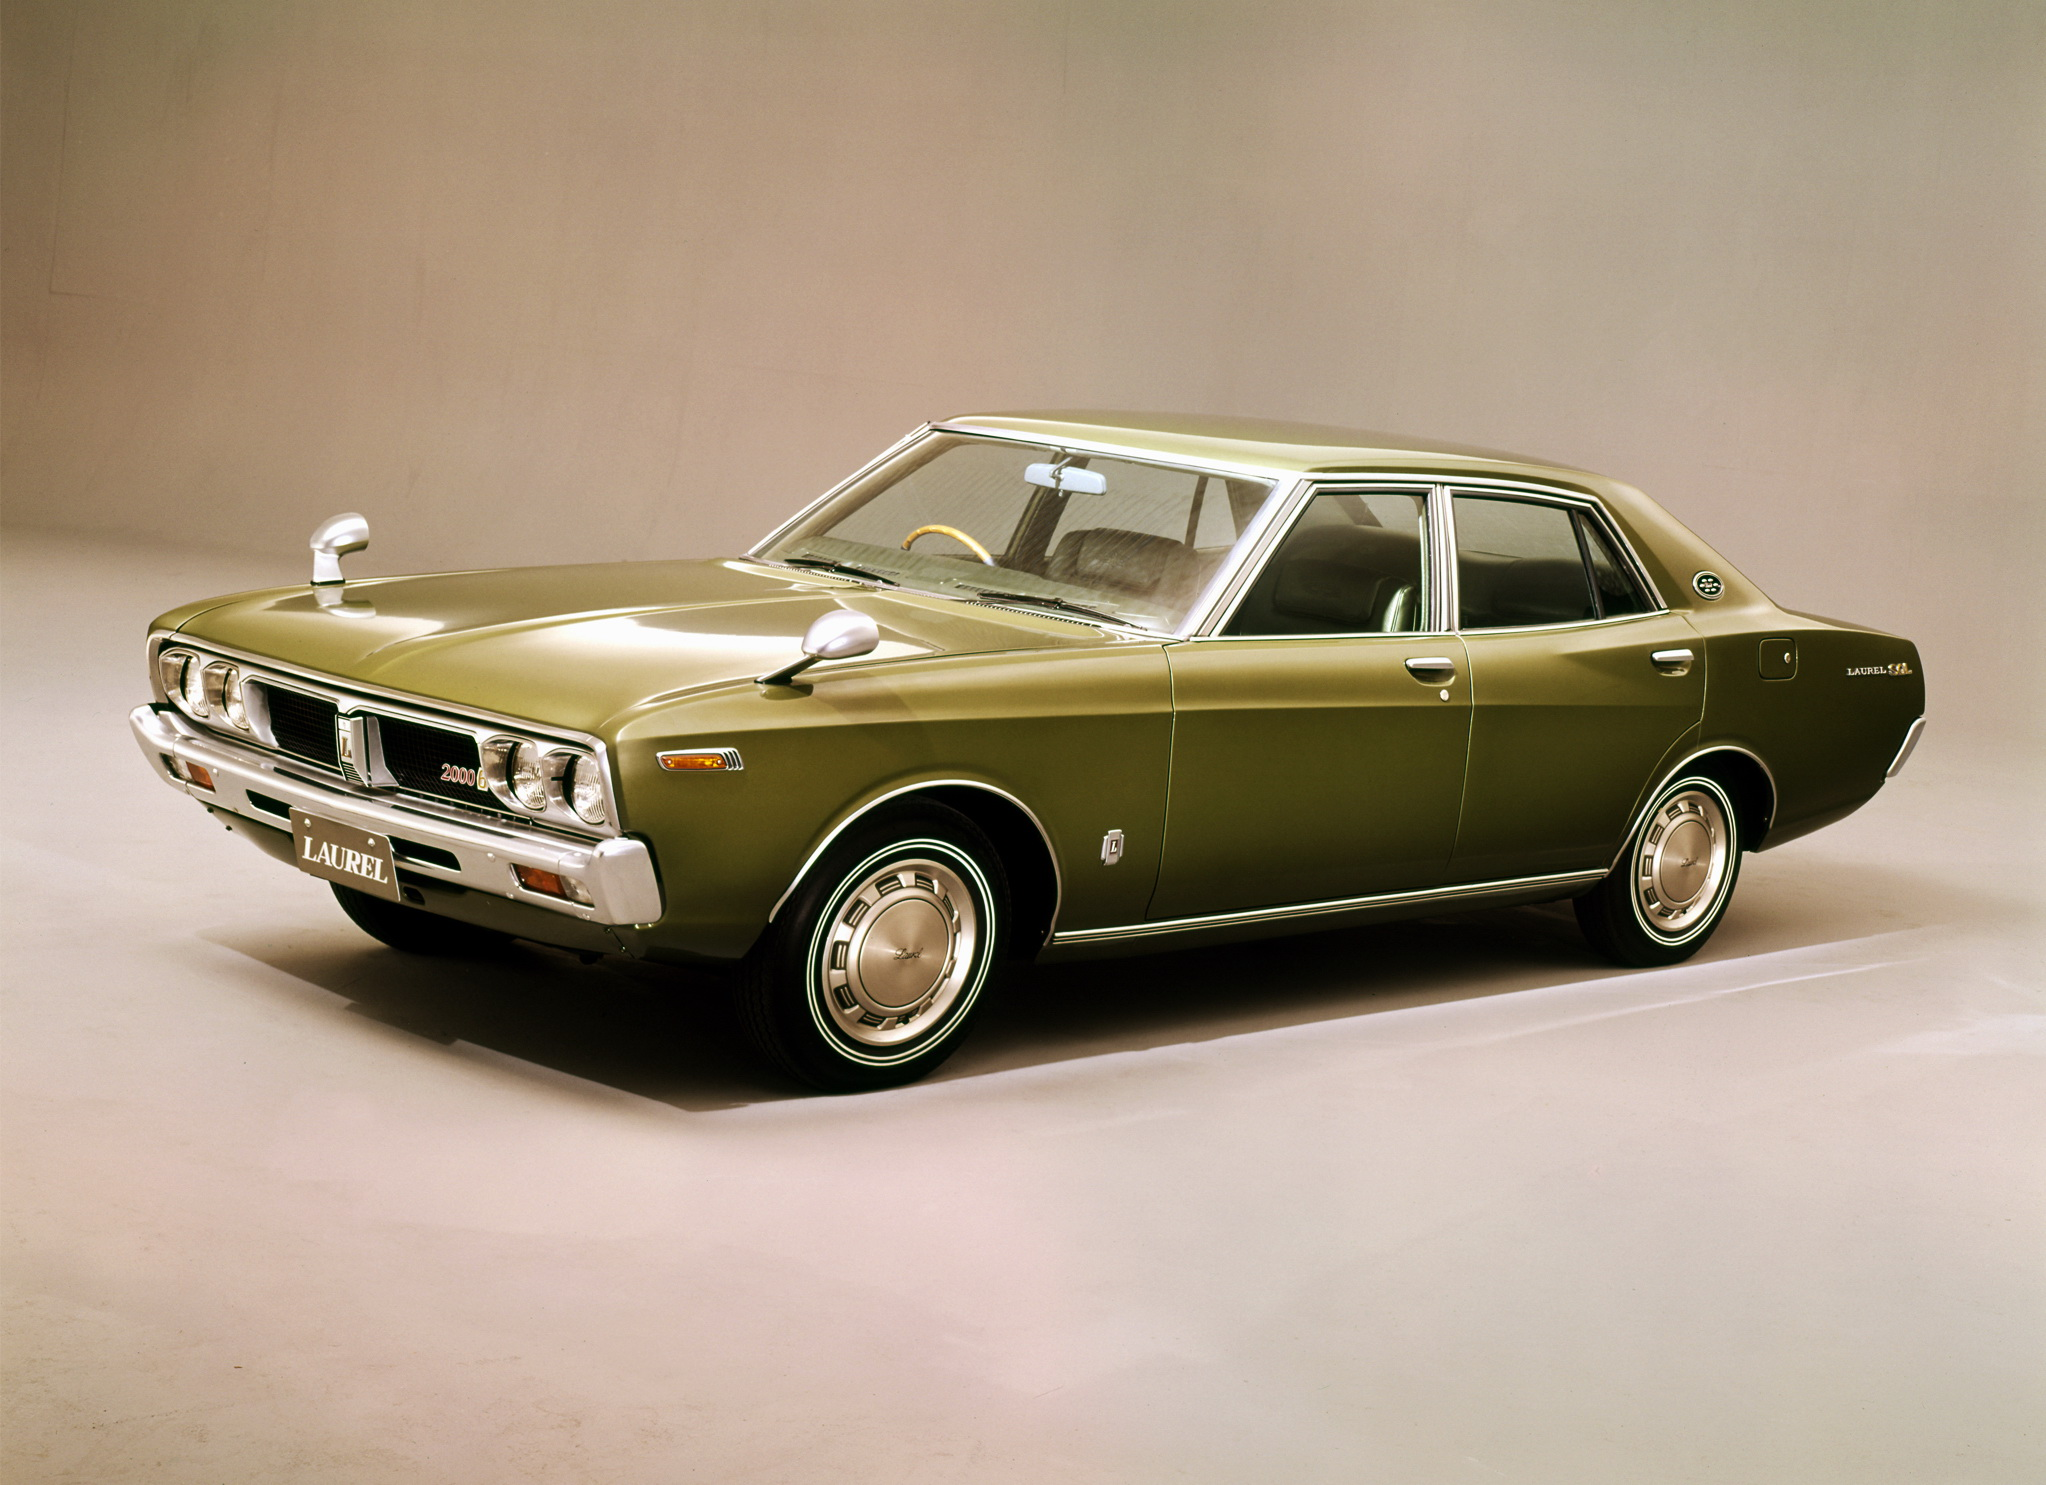 1970 Nissan Laurel #21